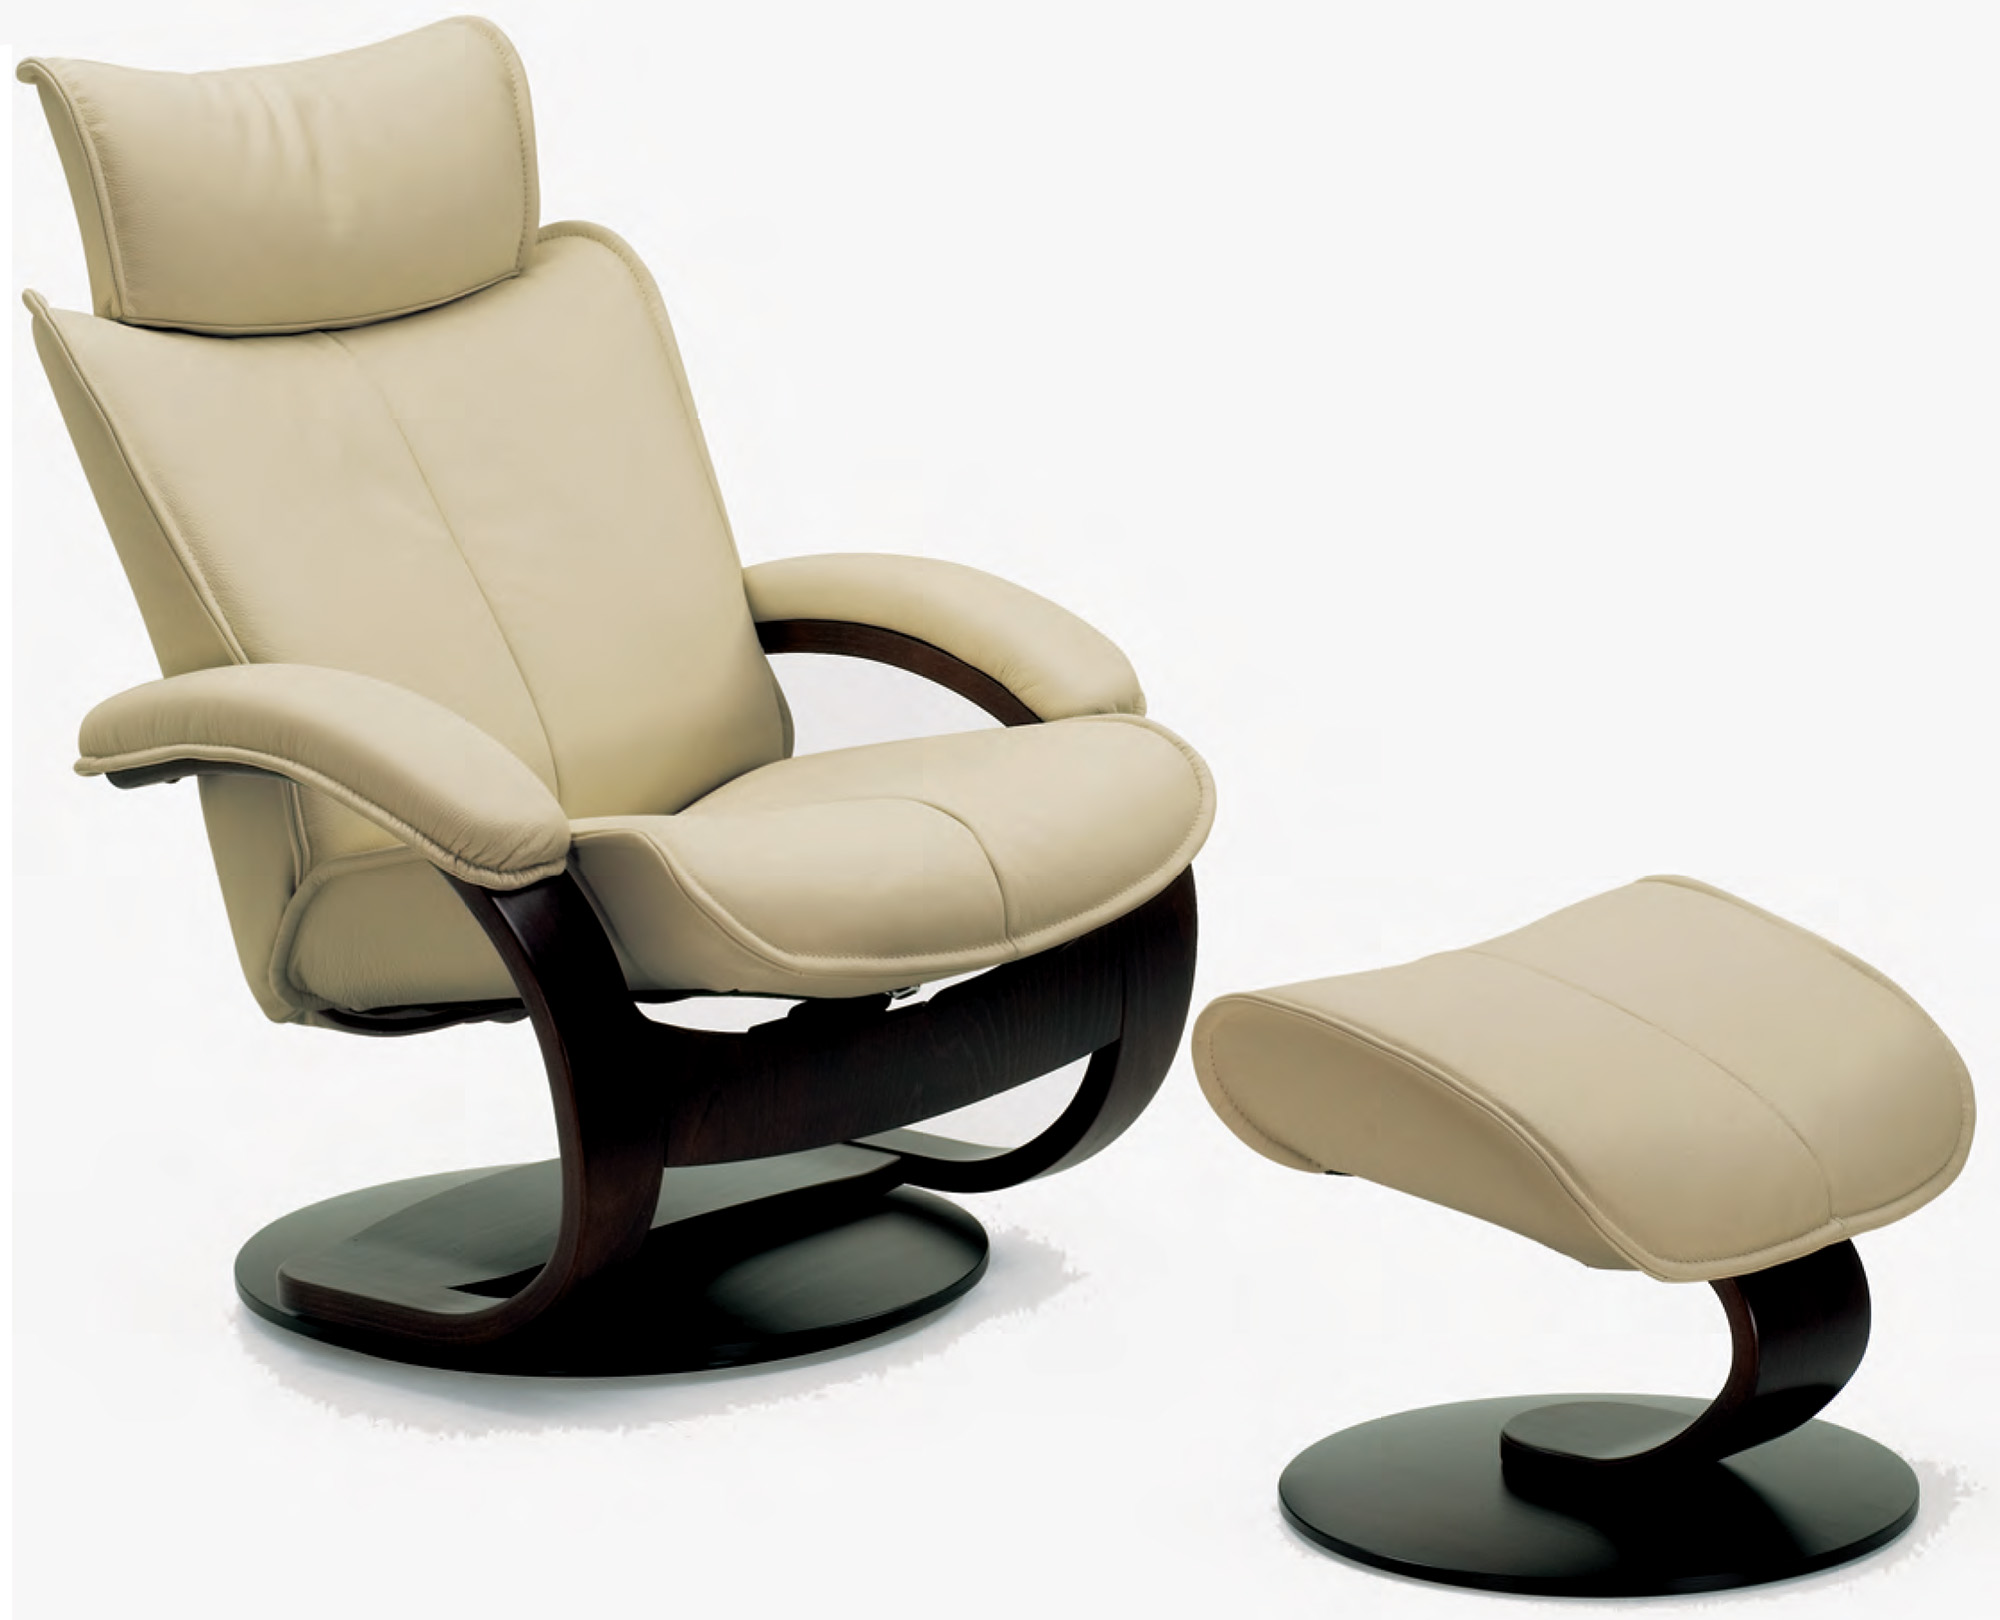 Fjords Ona Ergonomic Leather Recliner Chair and Ottoman Scandinavian Lounger : danish recliner chair - islam-shia.org